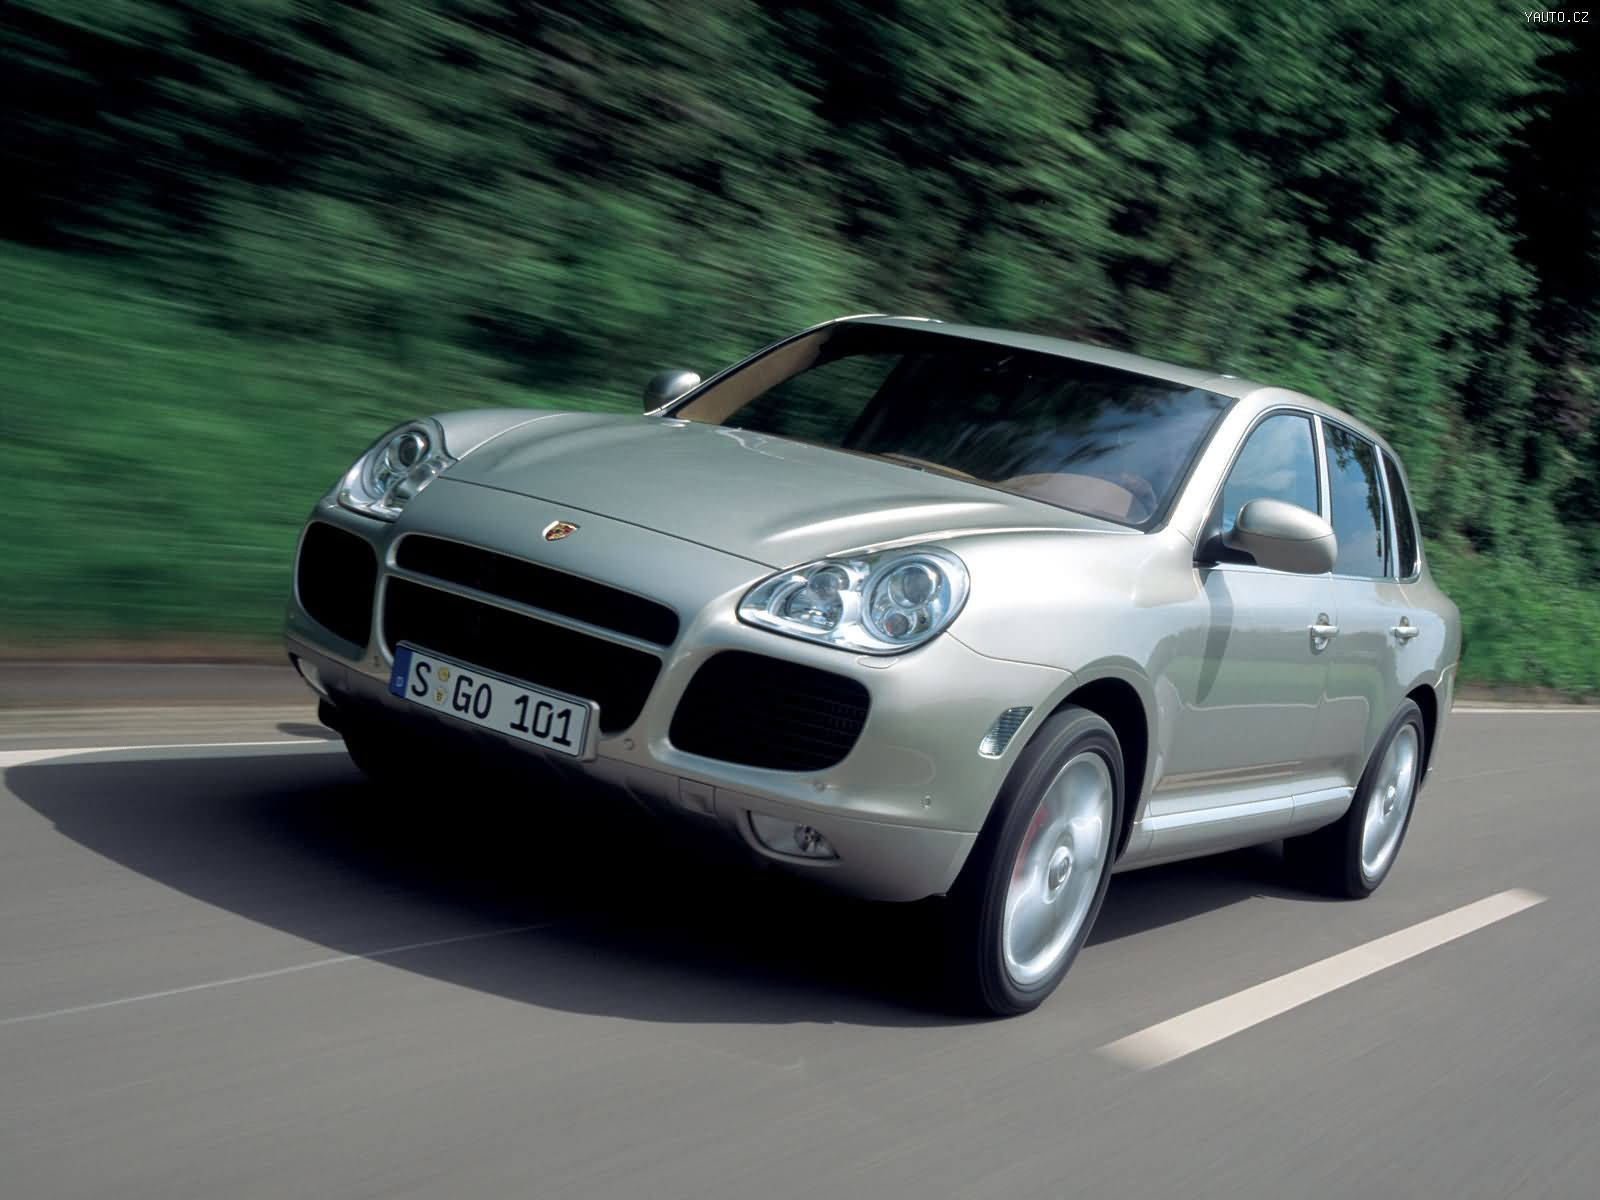 porsche cayenne 2003 auta na plochu tapety na plochu wallpapers. Black Bedroom Furniture Sets. Home Design Ideas